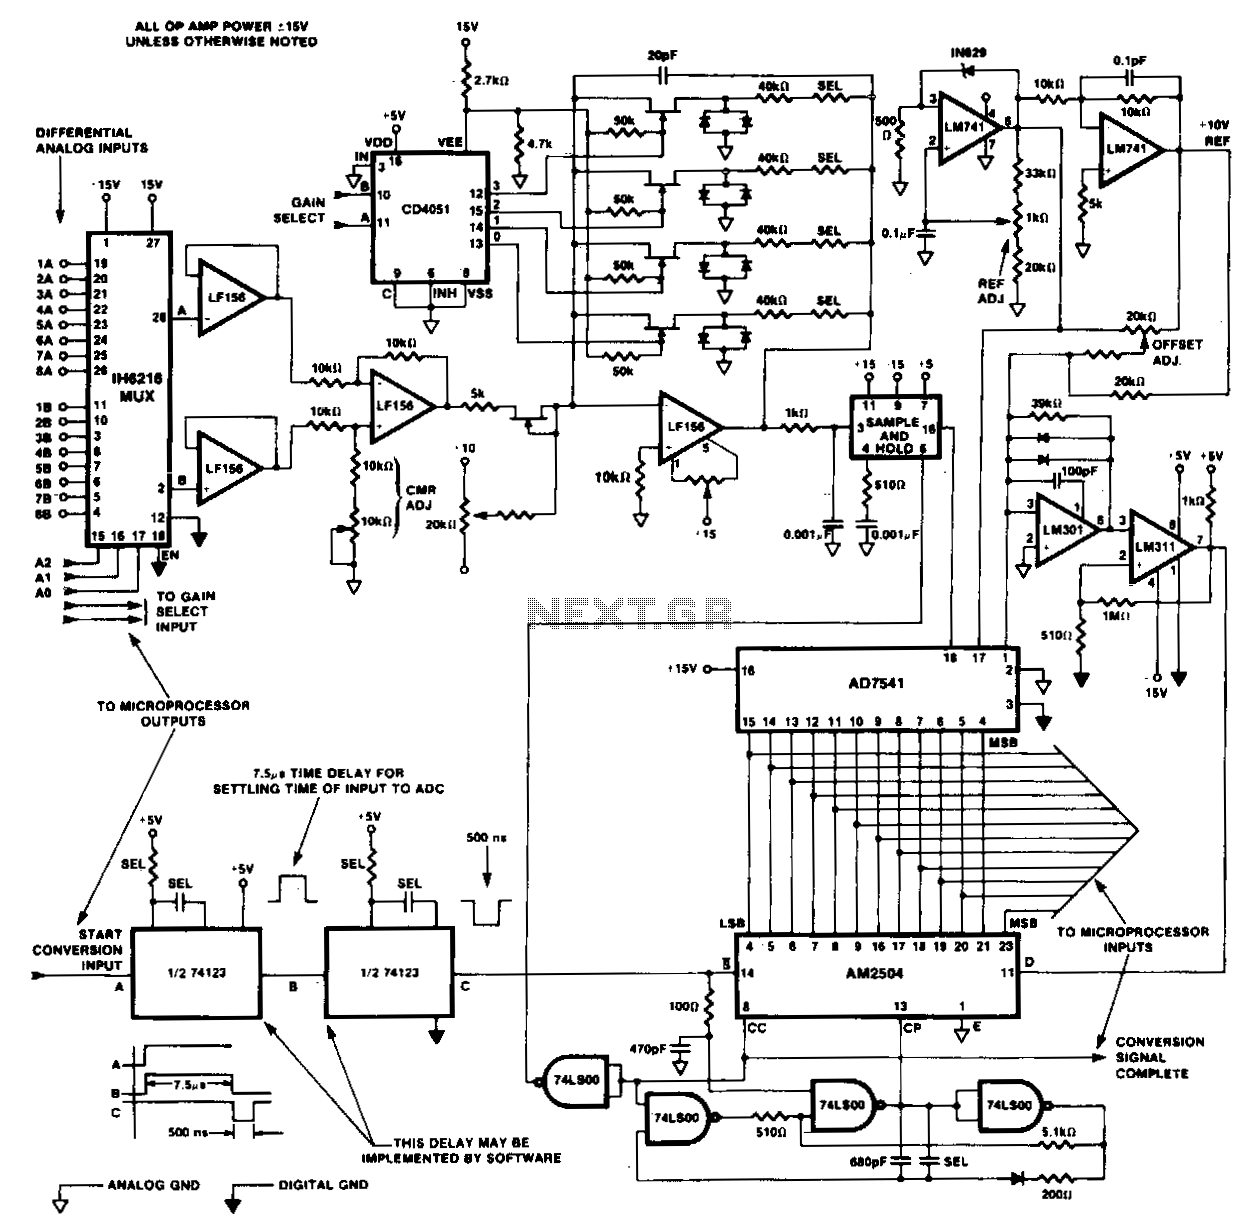 12-Bit-da-conversion-system - schematic